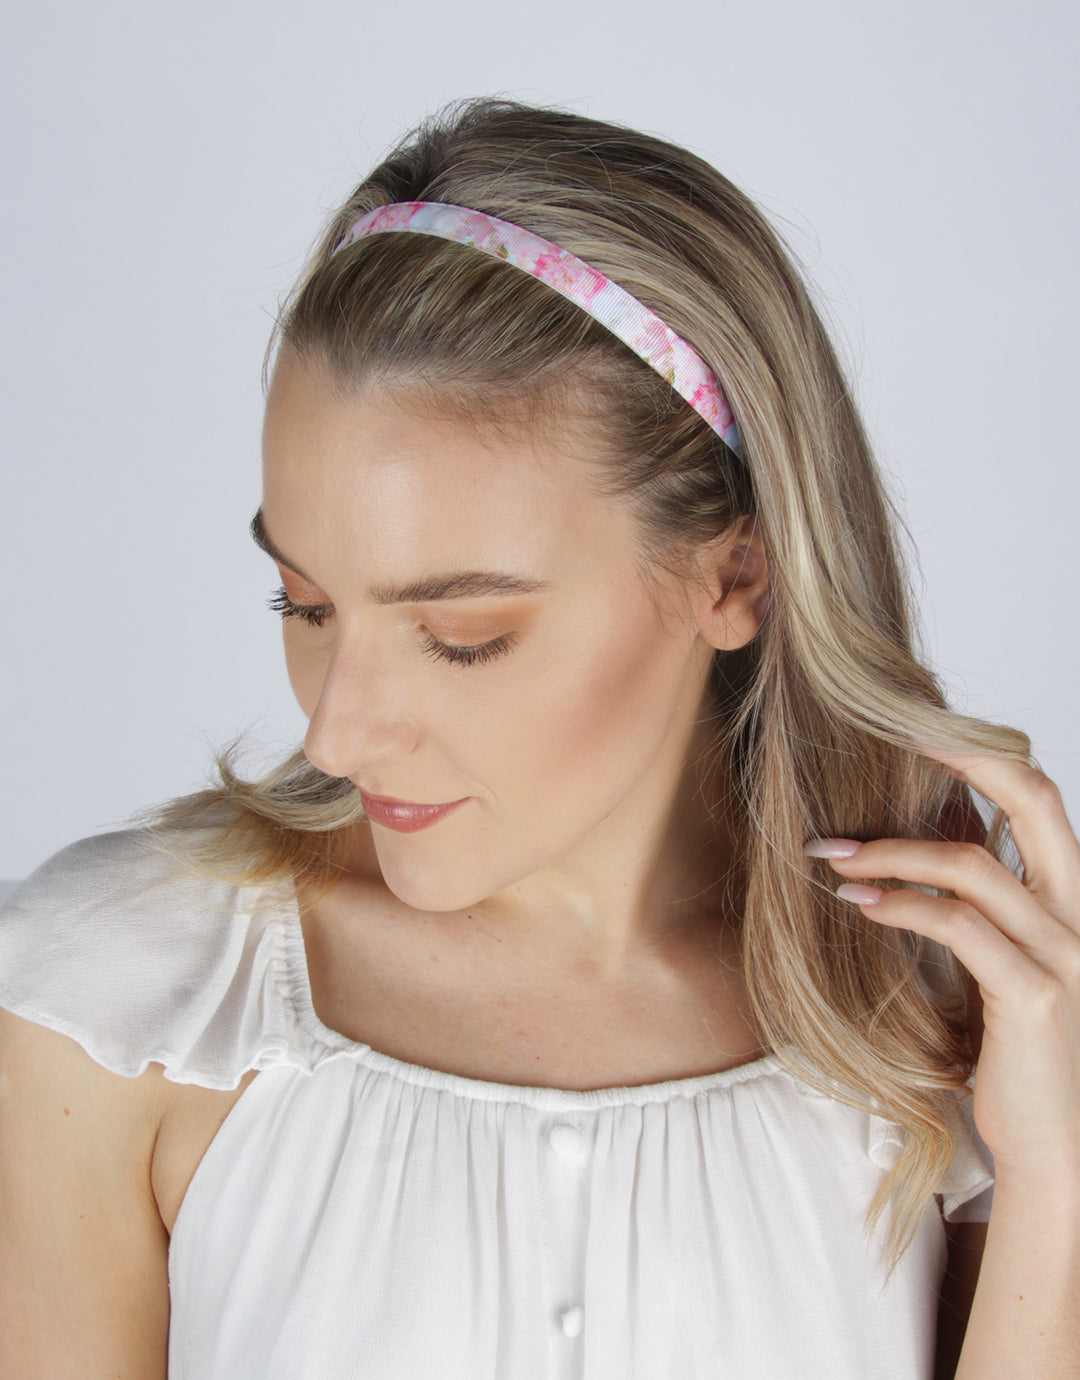 BANDED Women's Premium Headbands + Hair Accessories - Peony Splendor - Skinny Headband